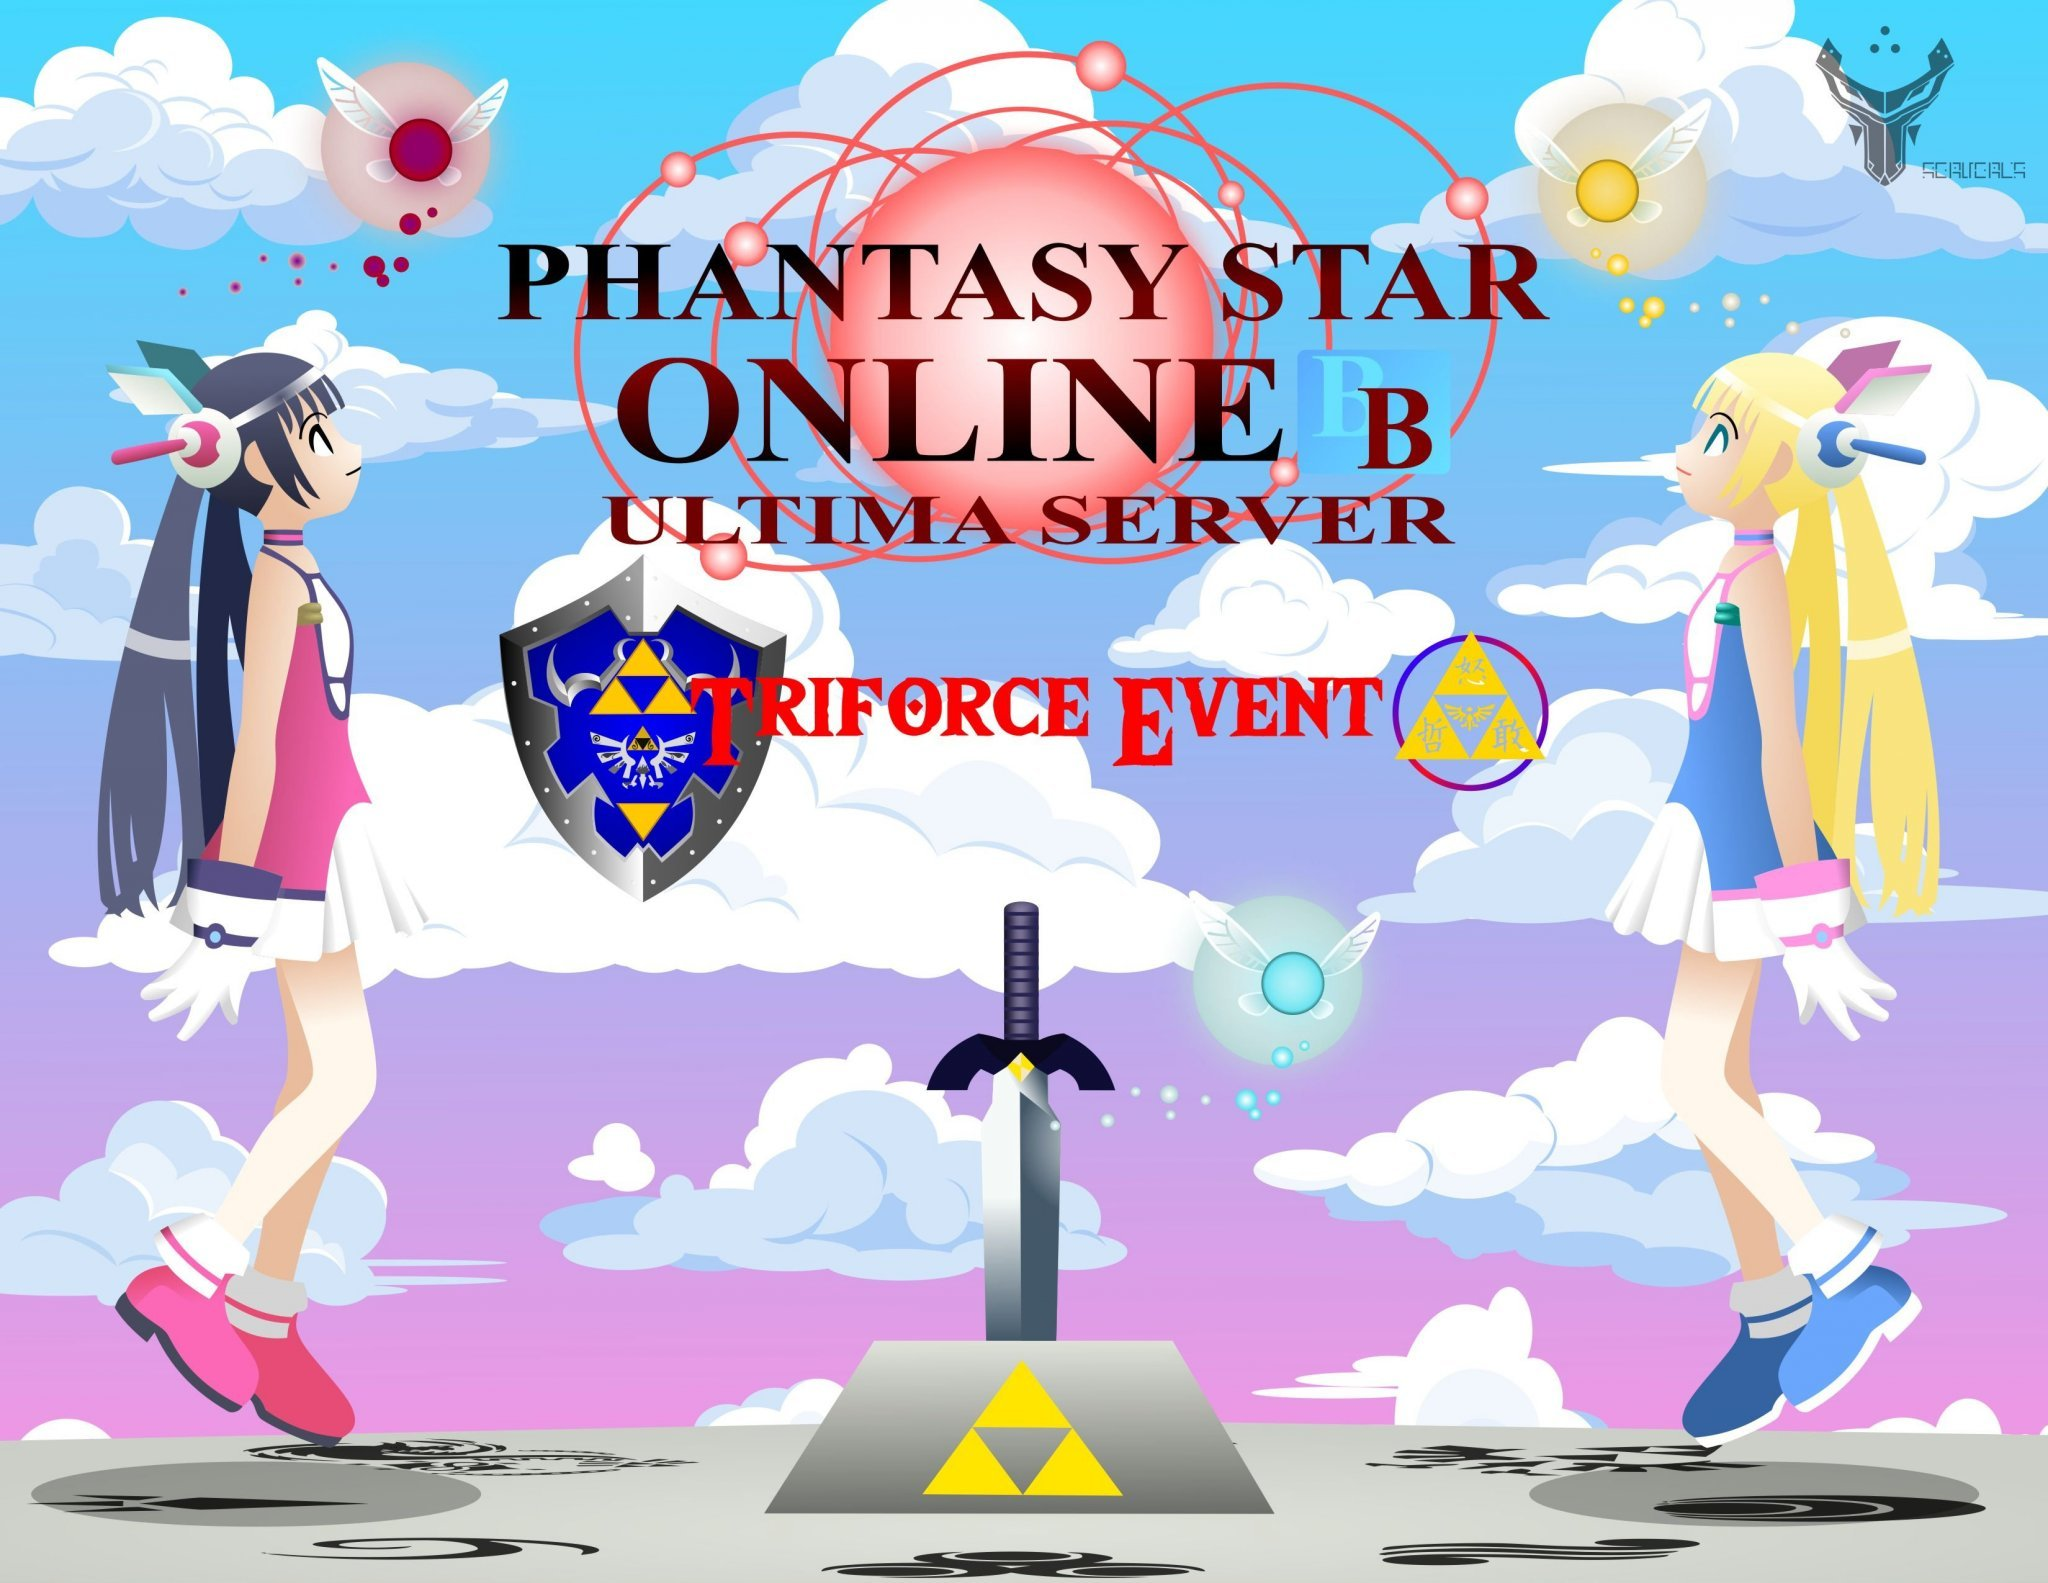 Ultima Triforce Event 2020